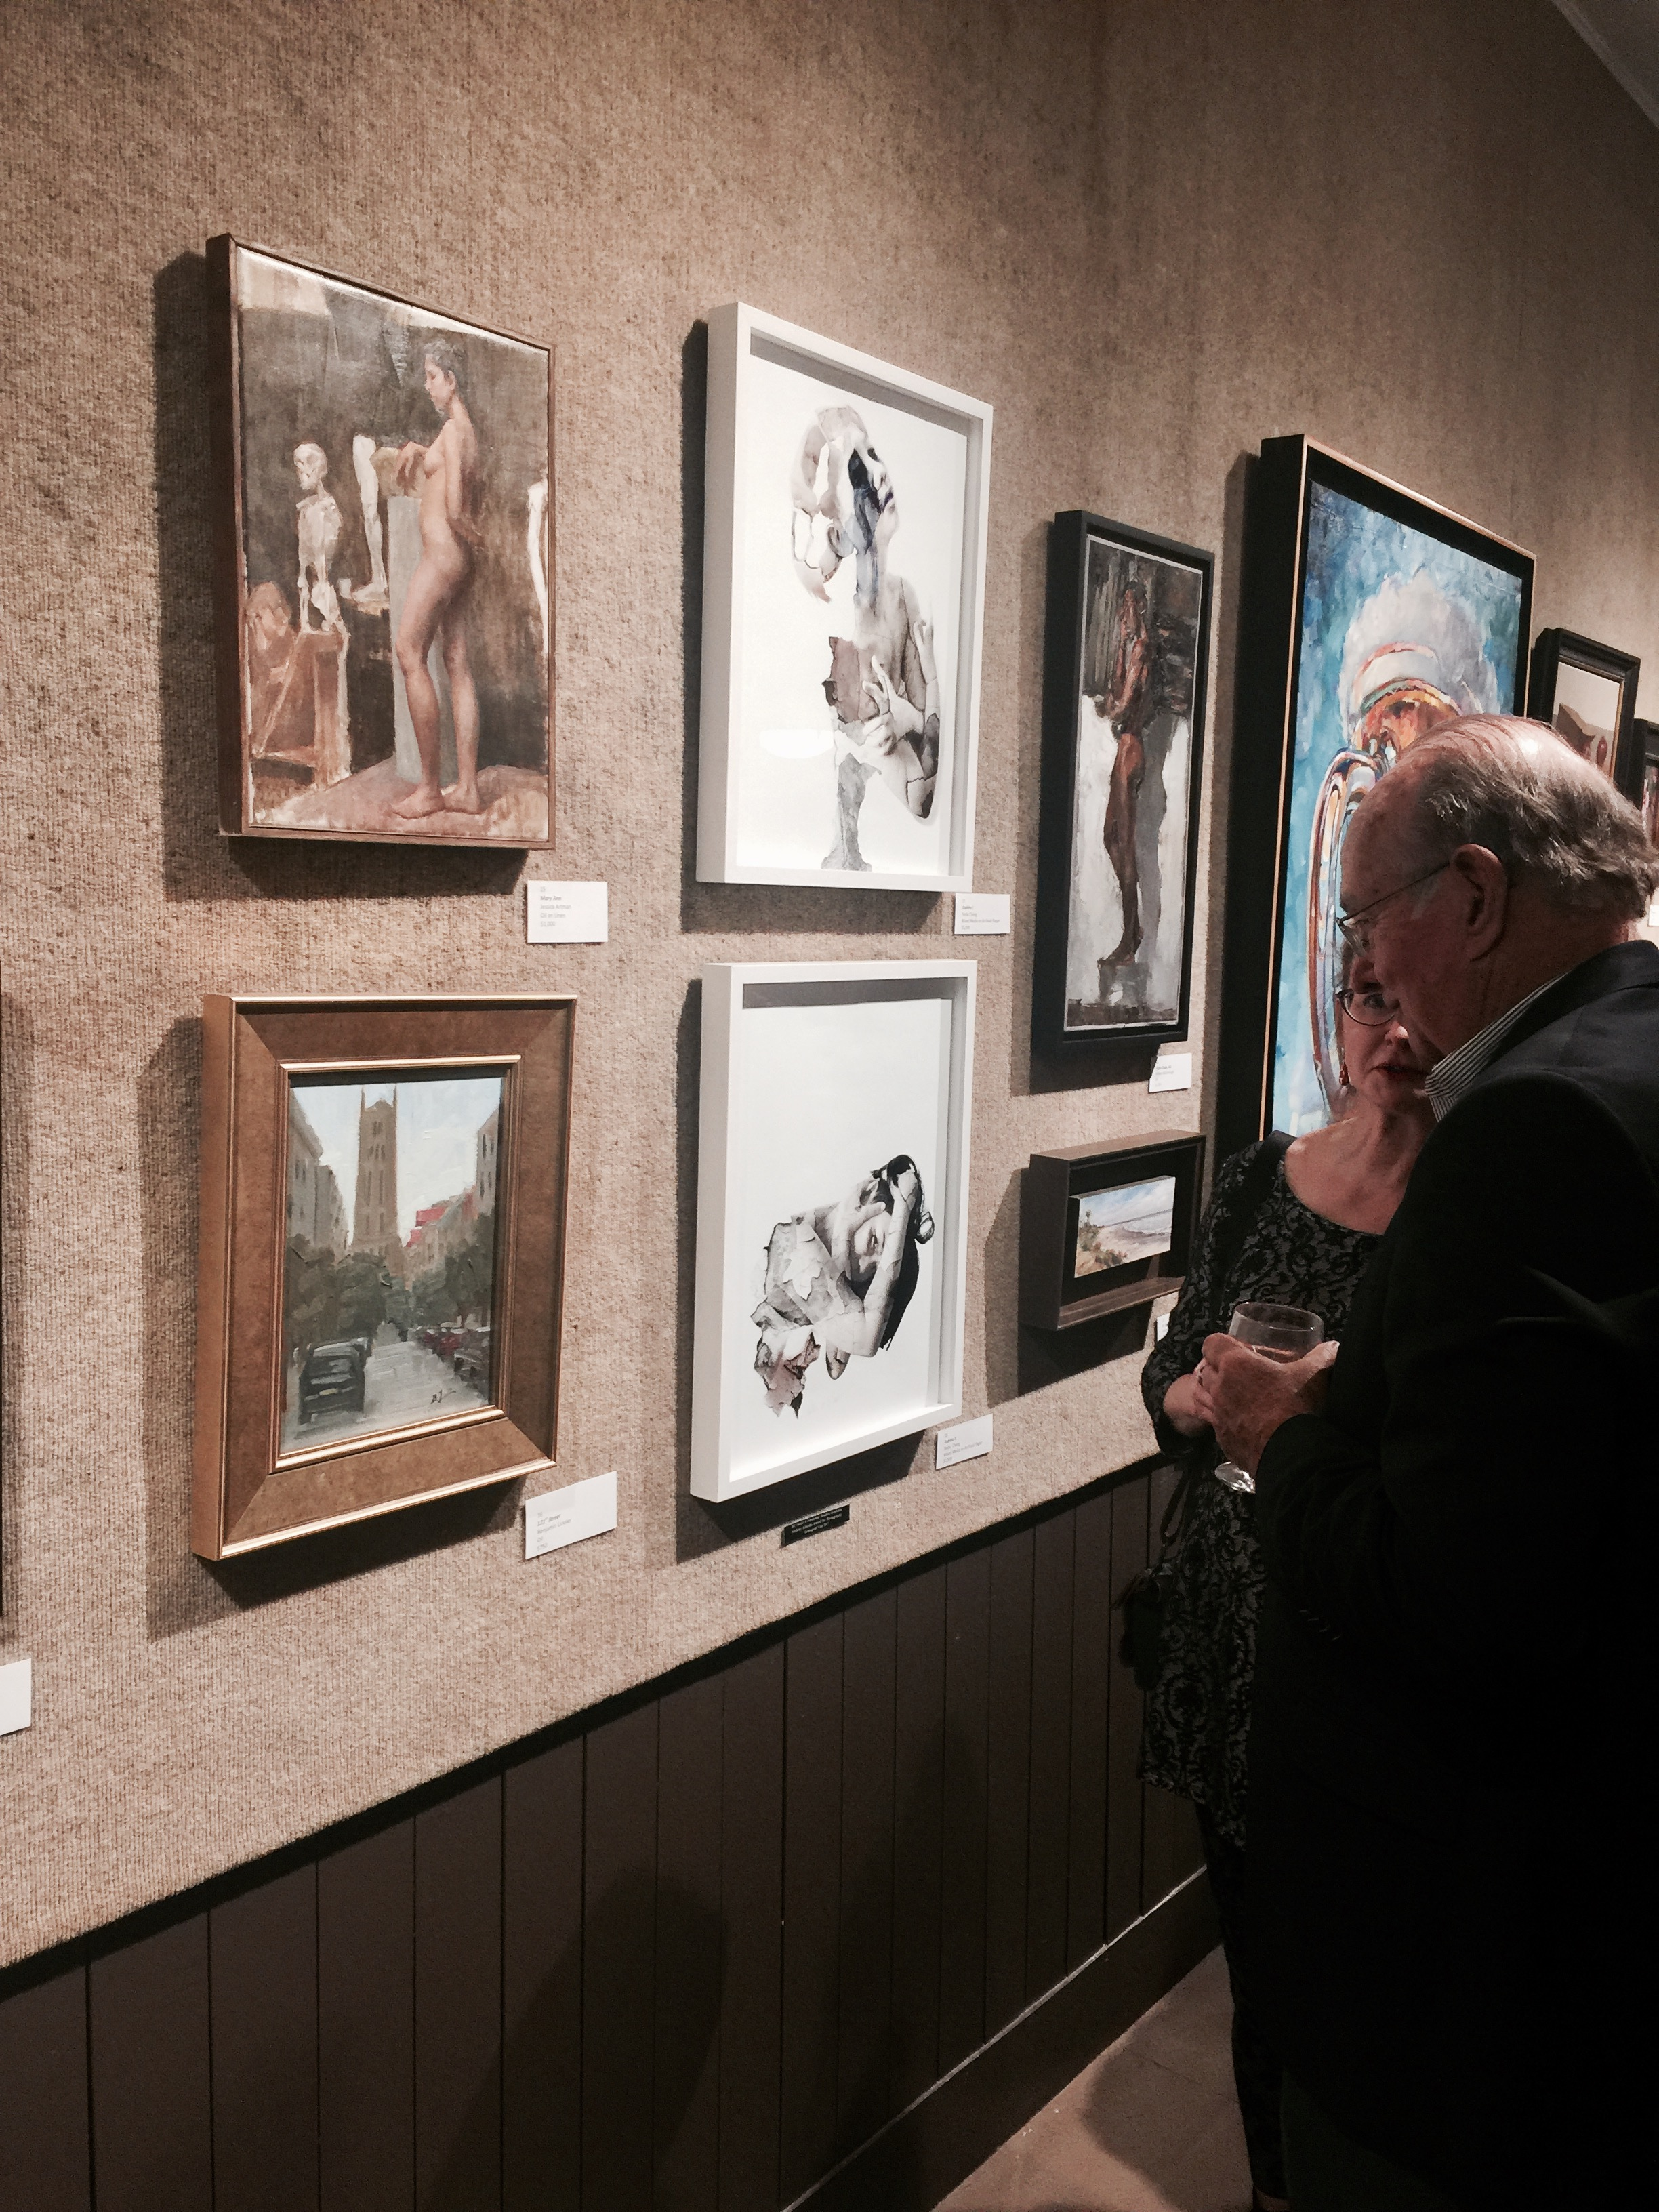 Artist Janet A Cook and ex. President of Salmagundi Club checking out Dukkha series.